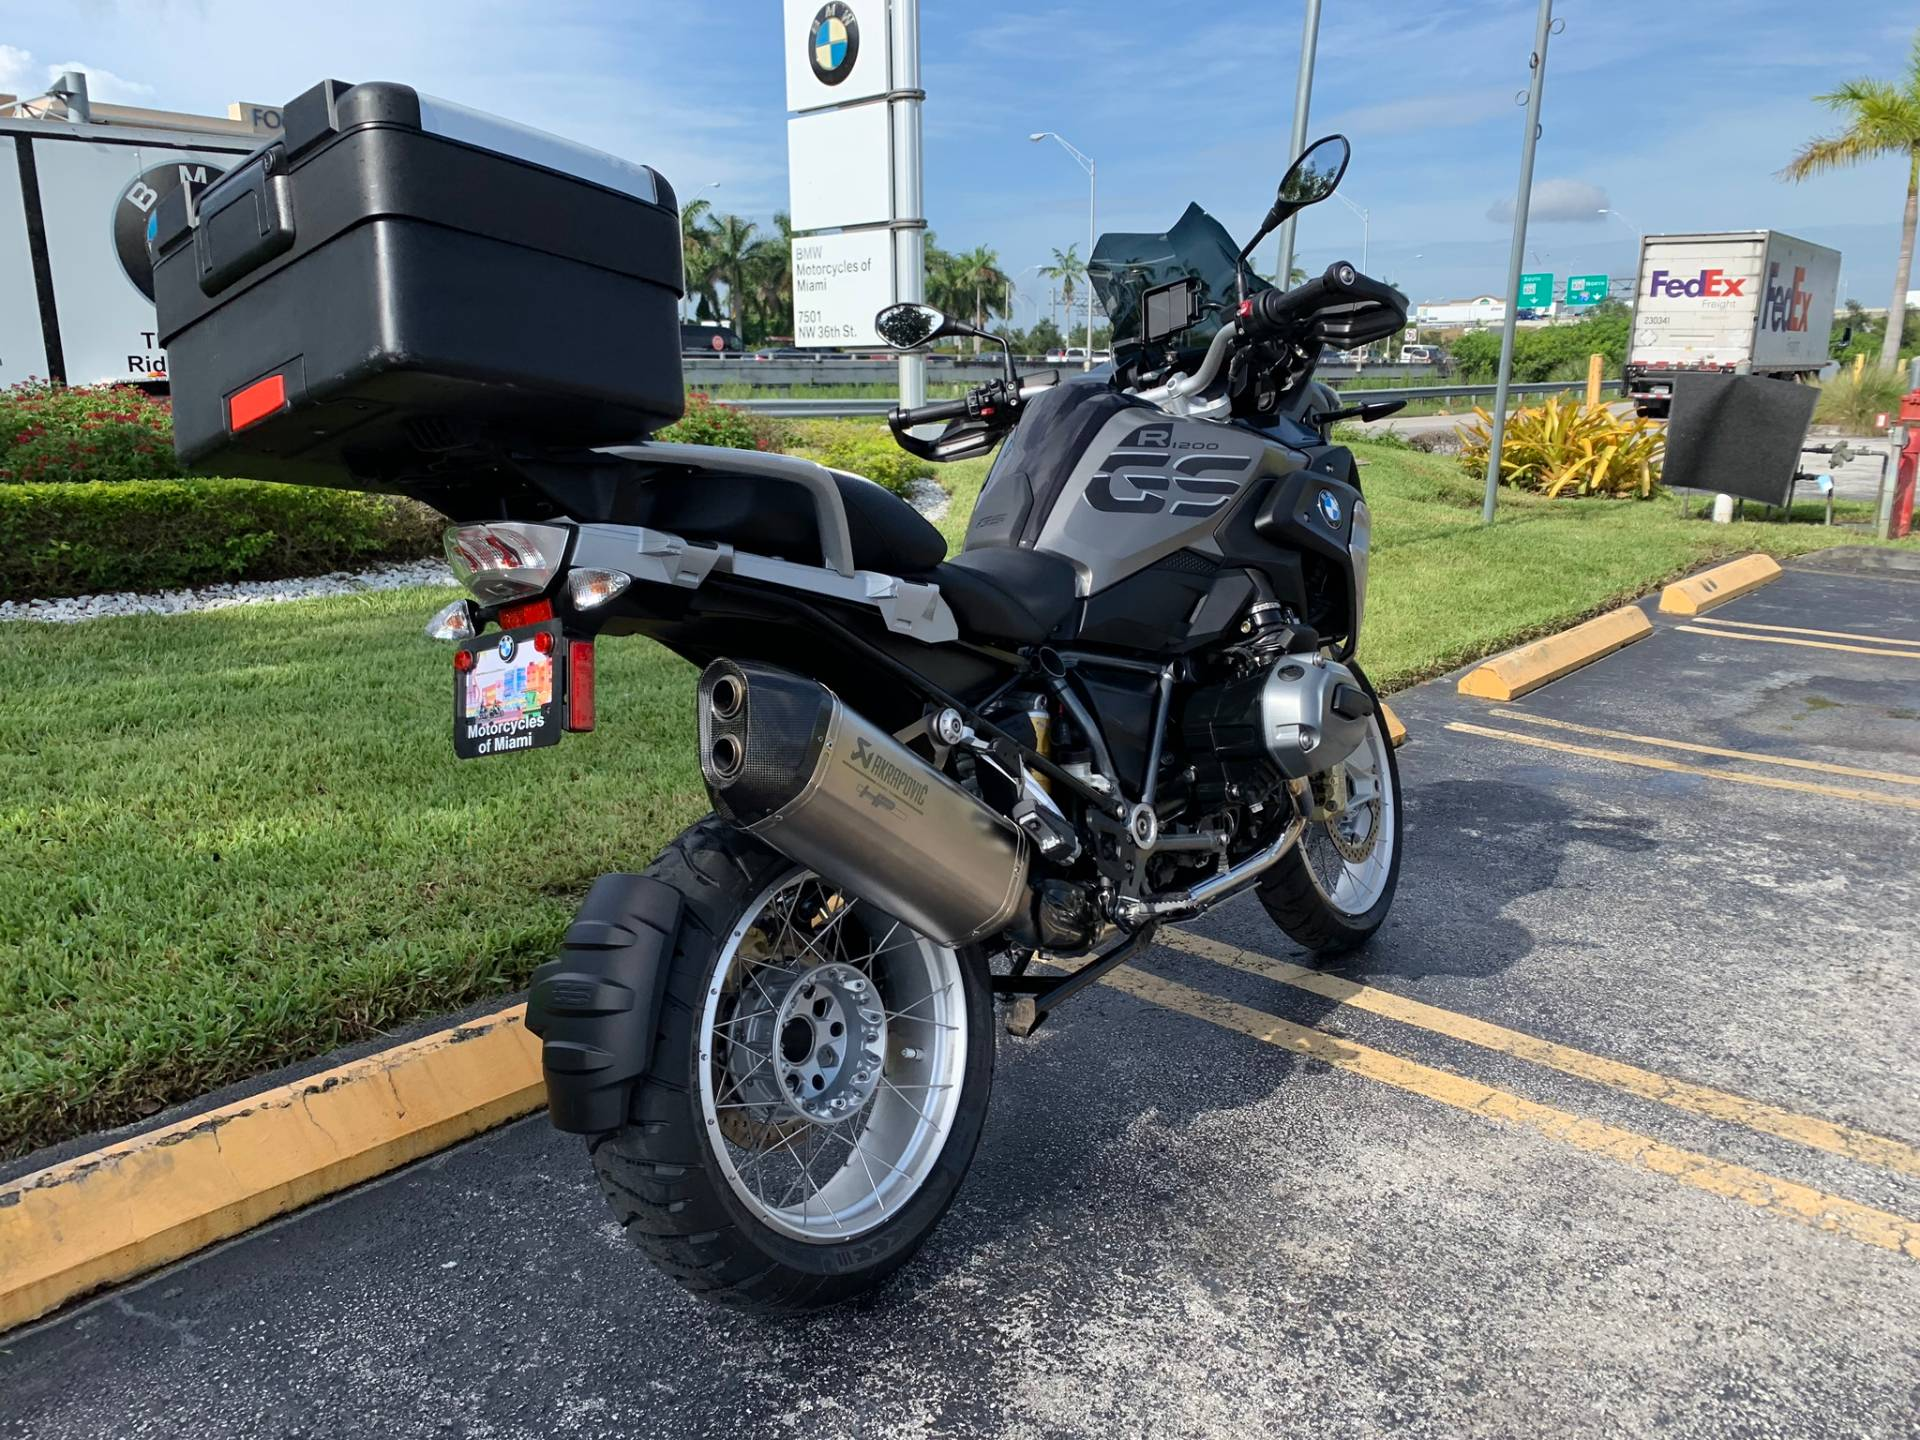 Used 2018 BMW R 1200 GS for sale, BMW R 1200GS for sale, BMW Motorcycle R1200GS, used BMW 1200GS, DUAL, GSA, BMW. BMW Motorcycles of Miami, Motorcycles of Miami, Motorcycles Miami, New Motorcycles, Used Motorcycles, pre-owned. #BMWMotorcyclesOfMiami #MotorcyclesOfMiami. - Photo 13